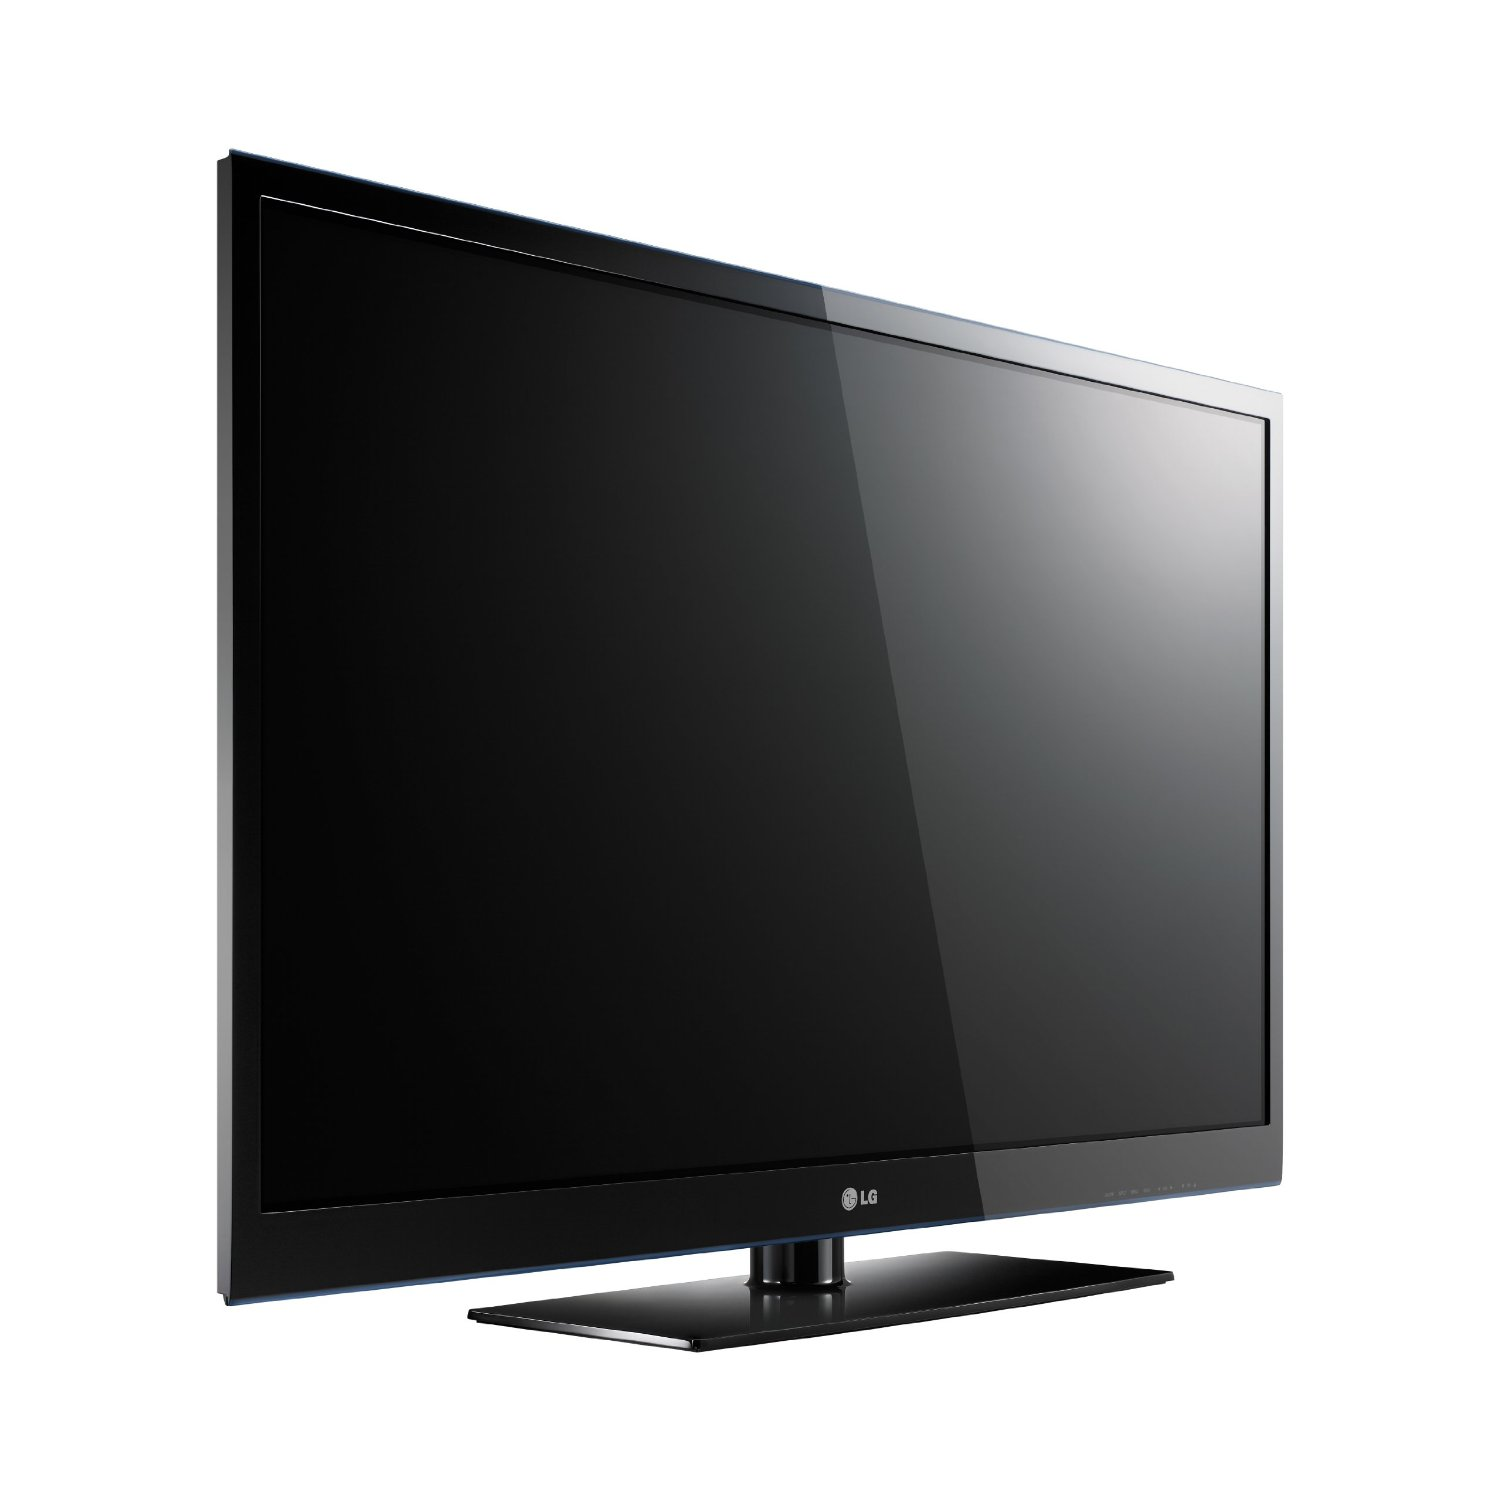 LG 60PK550 Full HD 60Inch Multi System Plasma TV - World Import for plasma tv png  150ifm